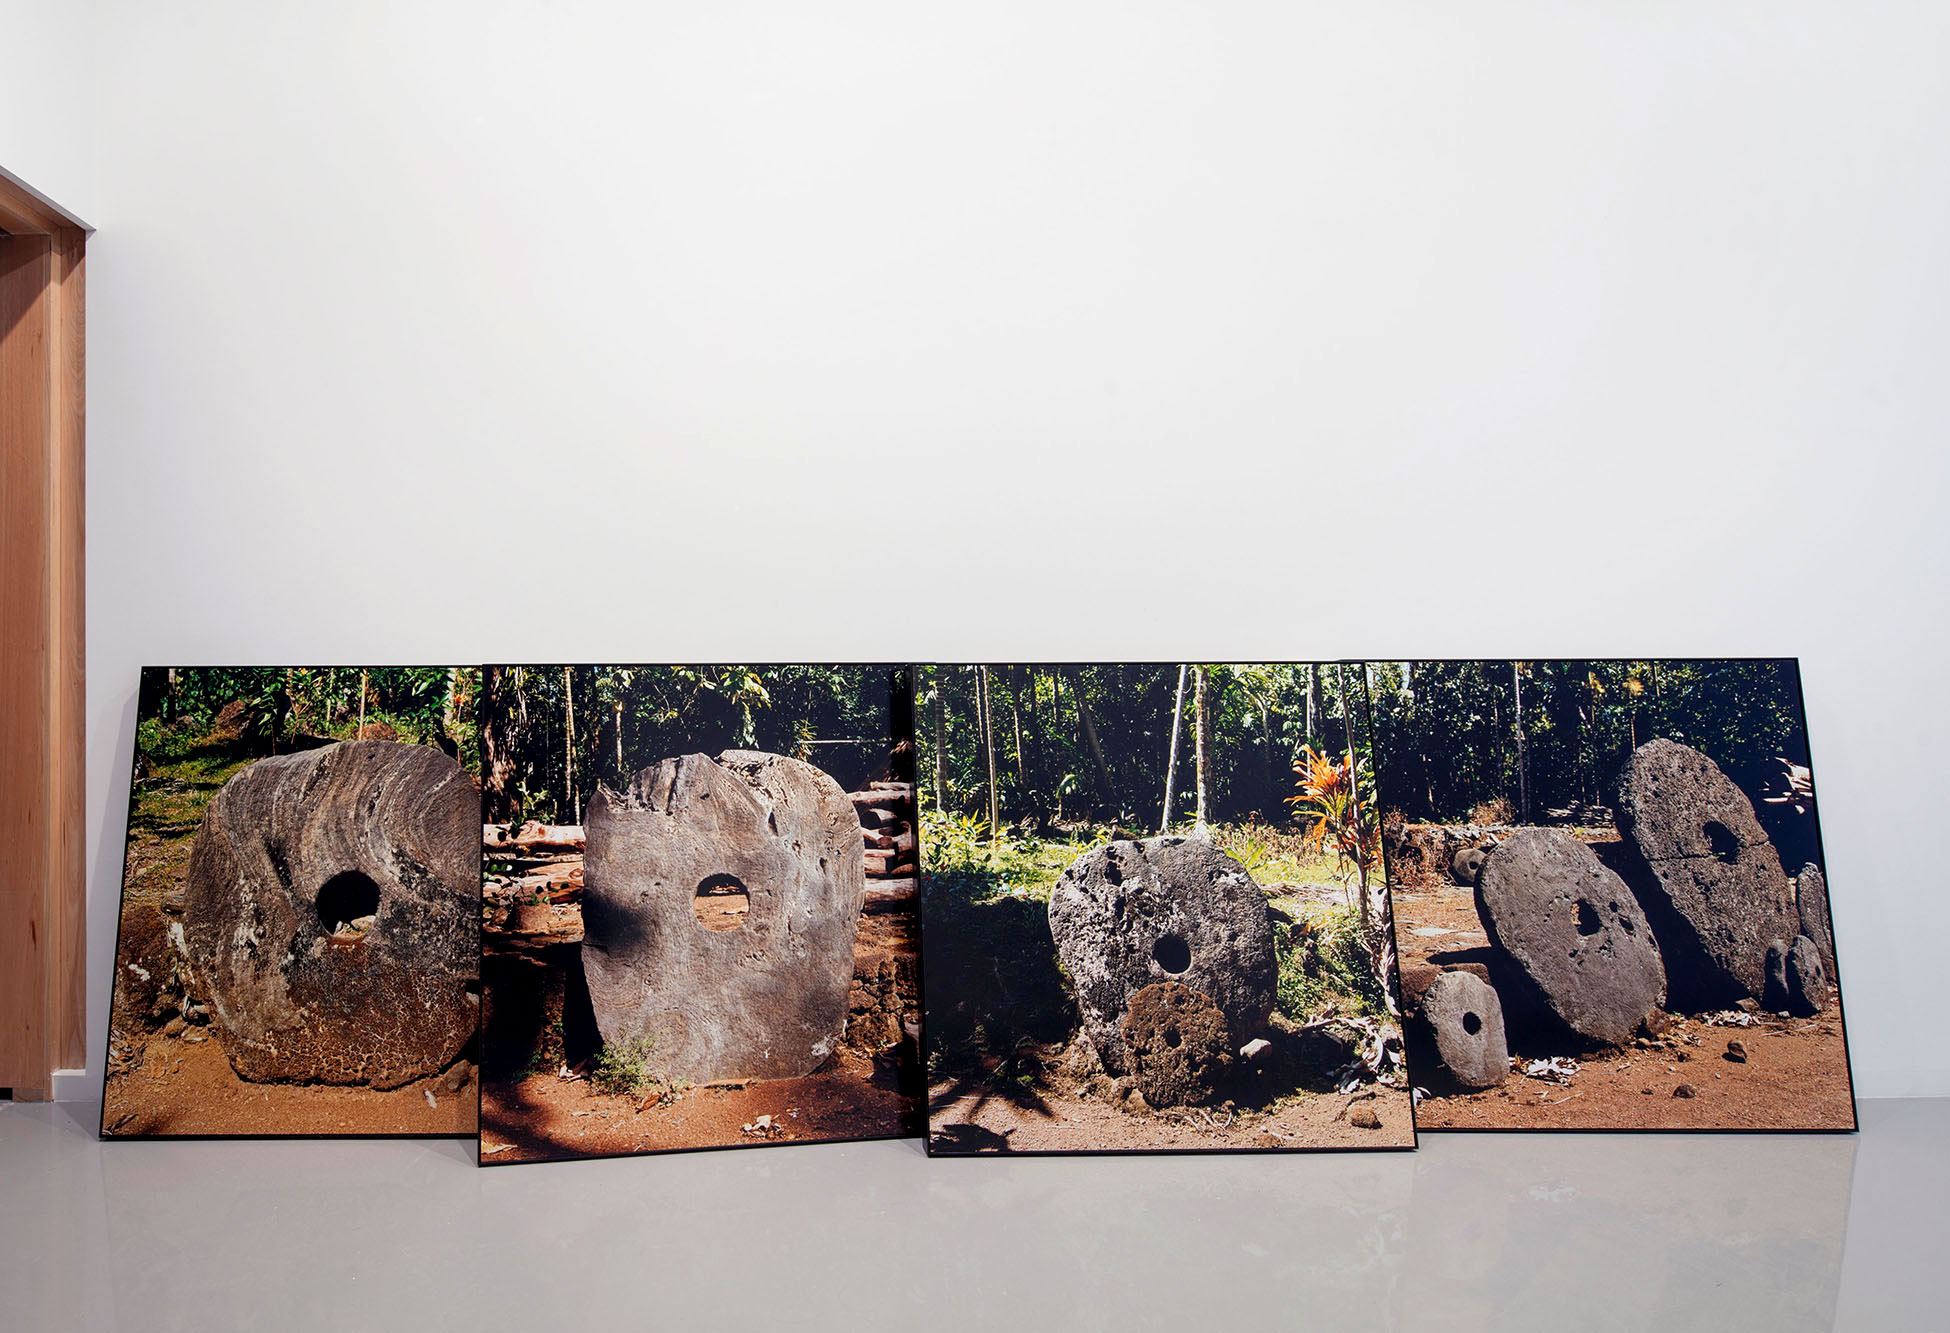 Nicholas Mangan, *Limits to Growth*, 2016, hand-printed C type photographs, 120 x 120 cm each. Installation view, Monash University  Museum of Art, Melbourne, 2016. Photographer: Andrew Curtis.